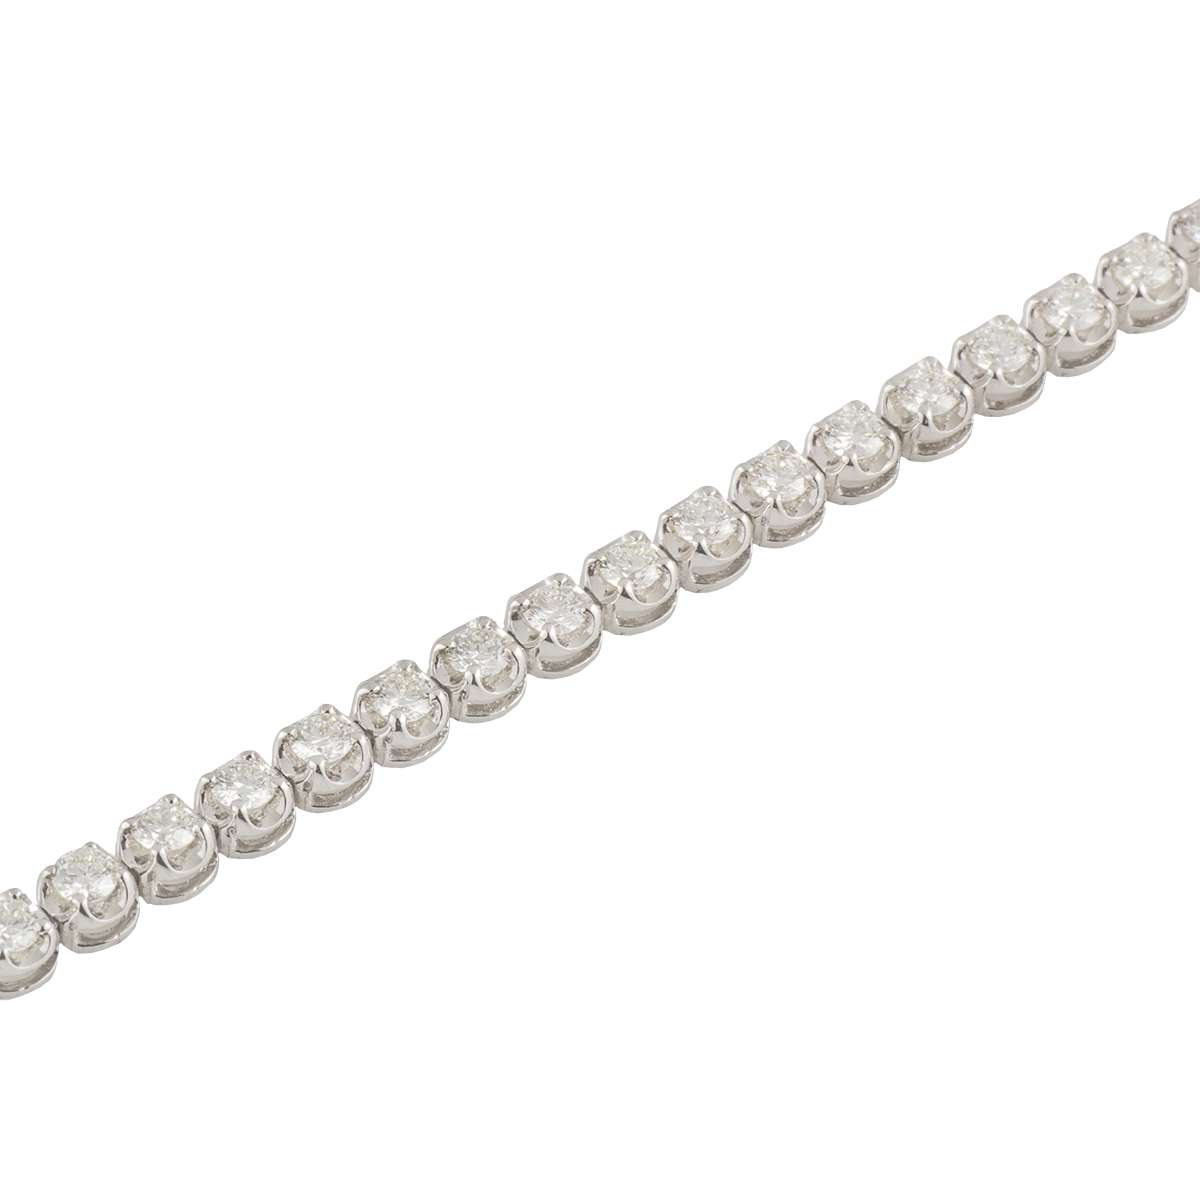 18k White Gold Diamond Line Bracelet 2.71ct G-H/VS